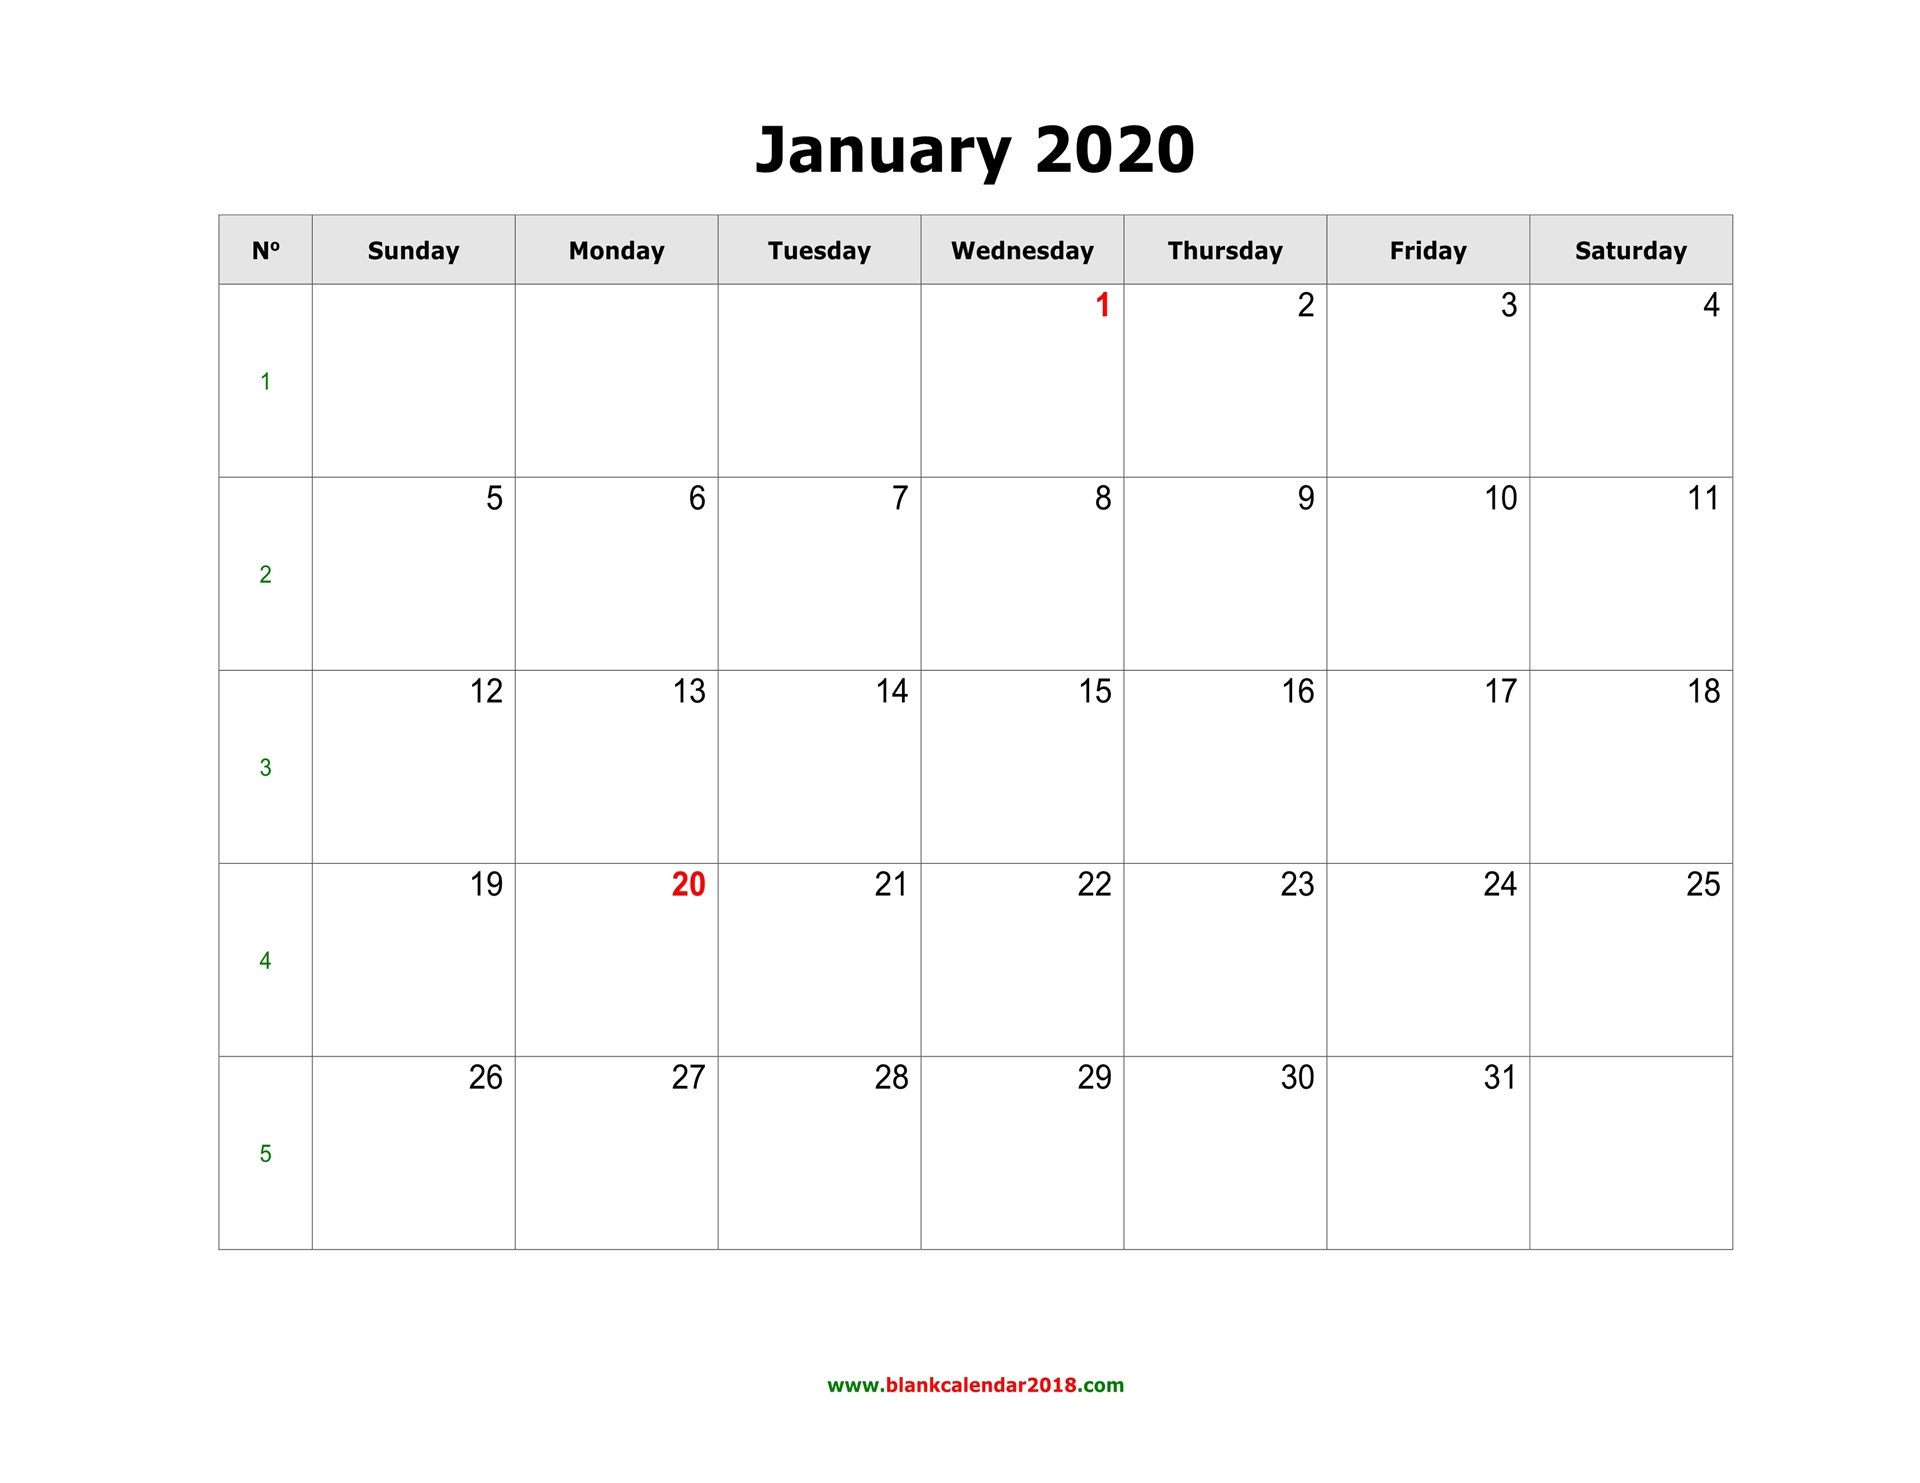 Blank Calendar 2020 within Blank Monthly Calendar Printable Portic 2020 That Can Be Edit